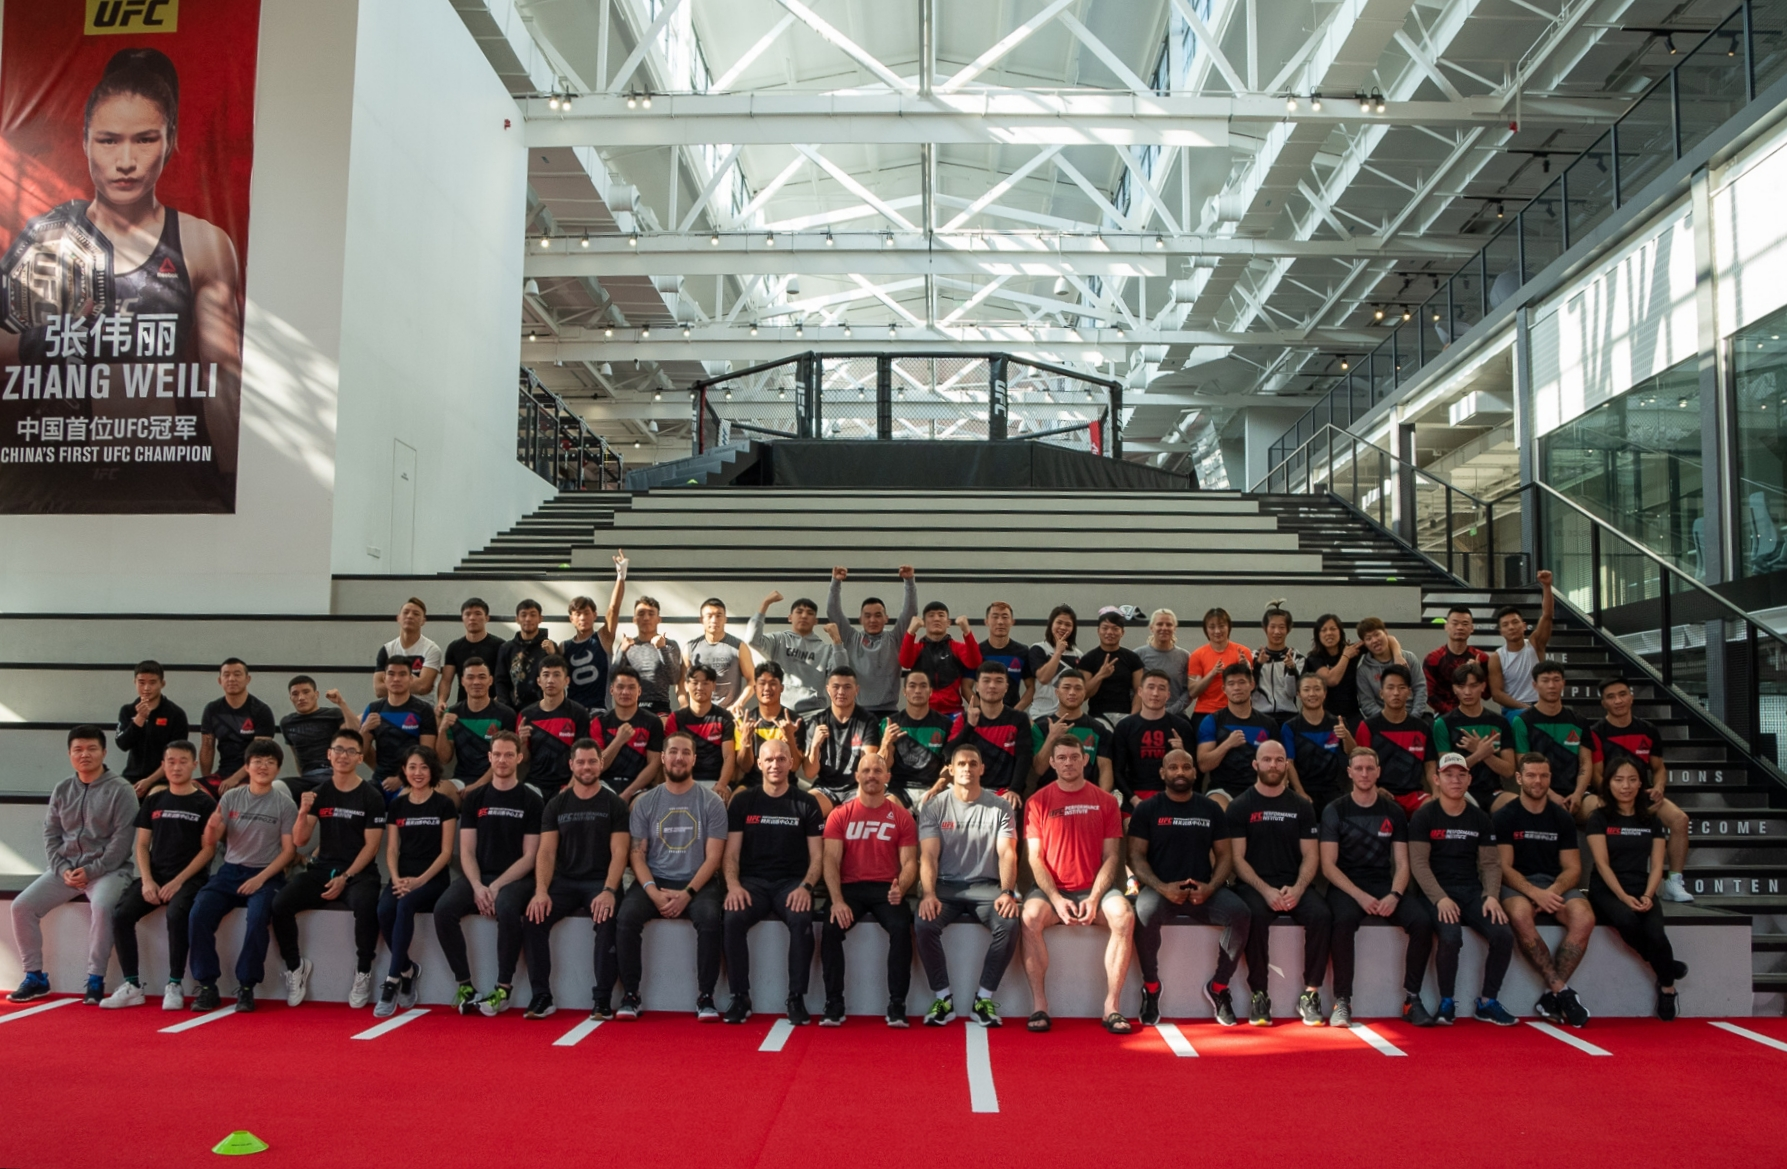 TOP PERFORMERS AT SECOND UFC COMBINE  SELECTED TO PARTICIPATE IN THE UFC ACADEMY - UFC Academy